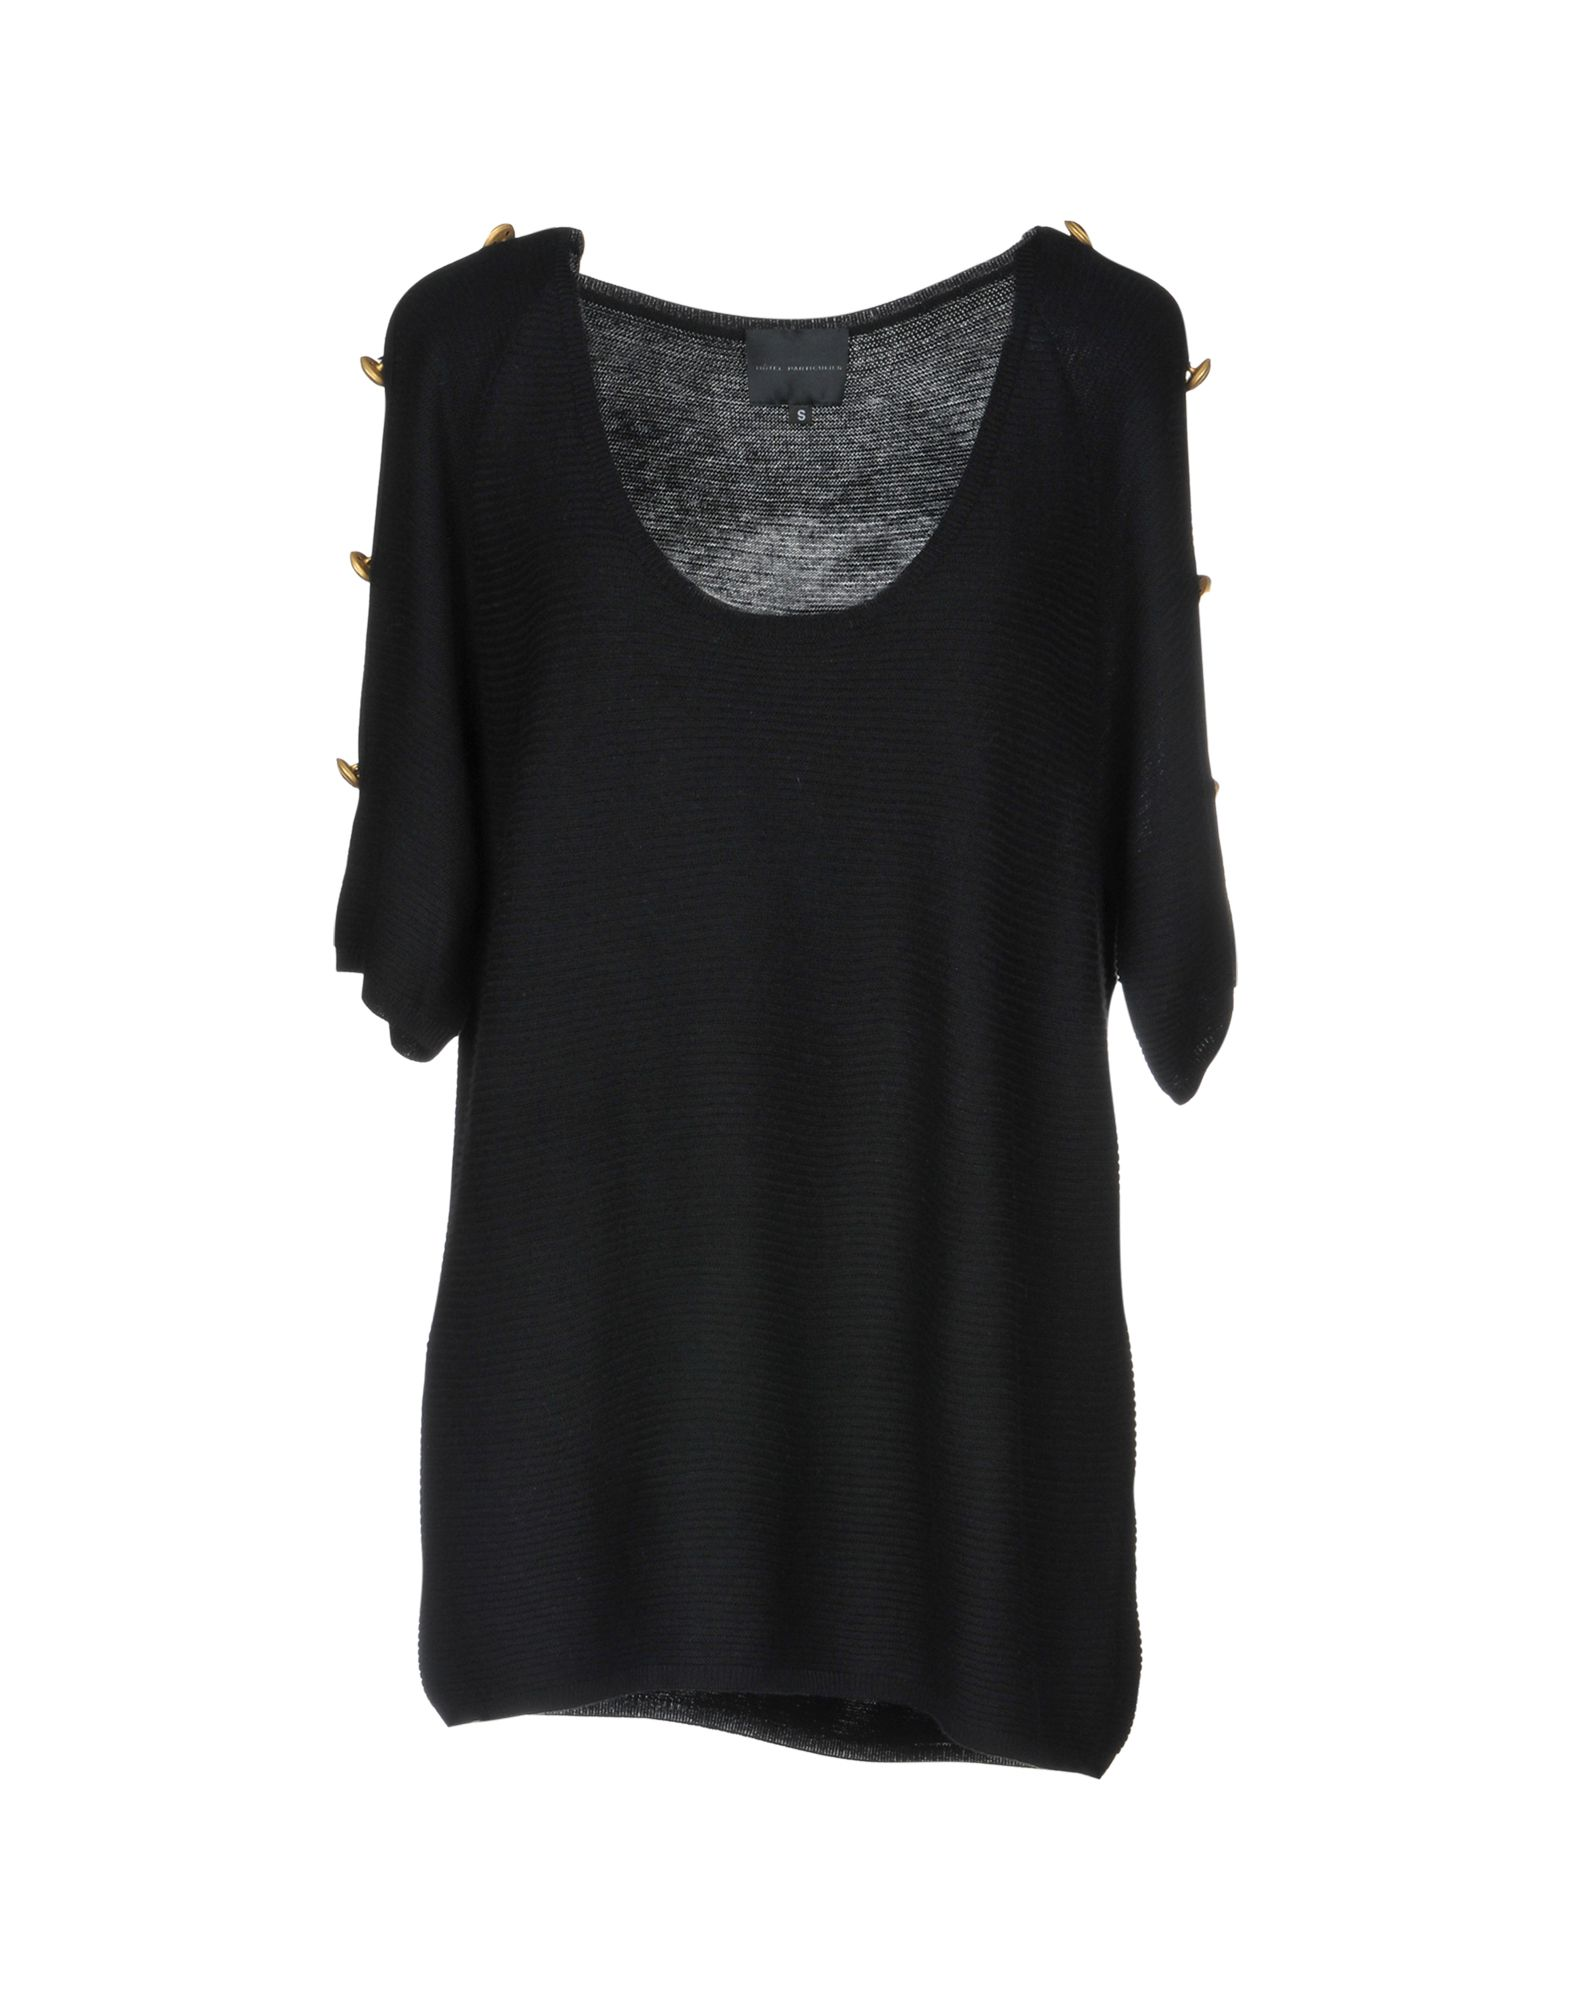 HOTEL PARTICULIER Sweater in Black